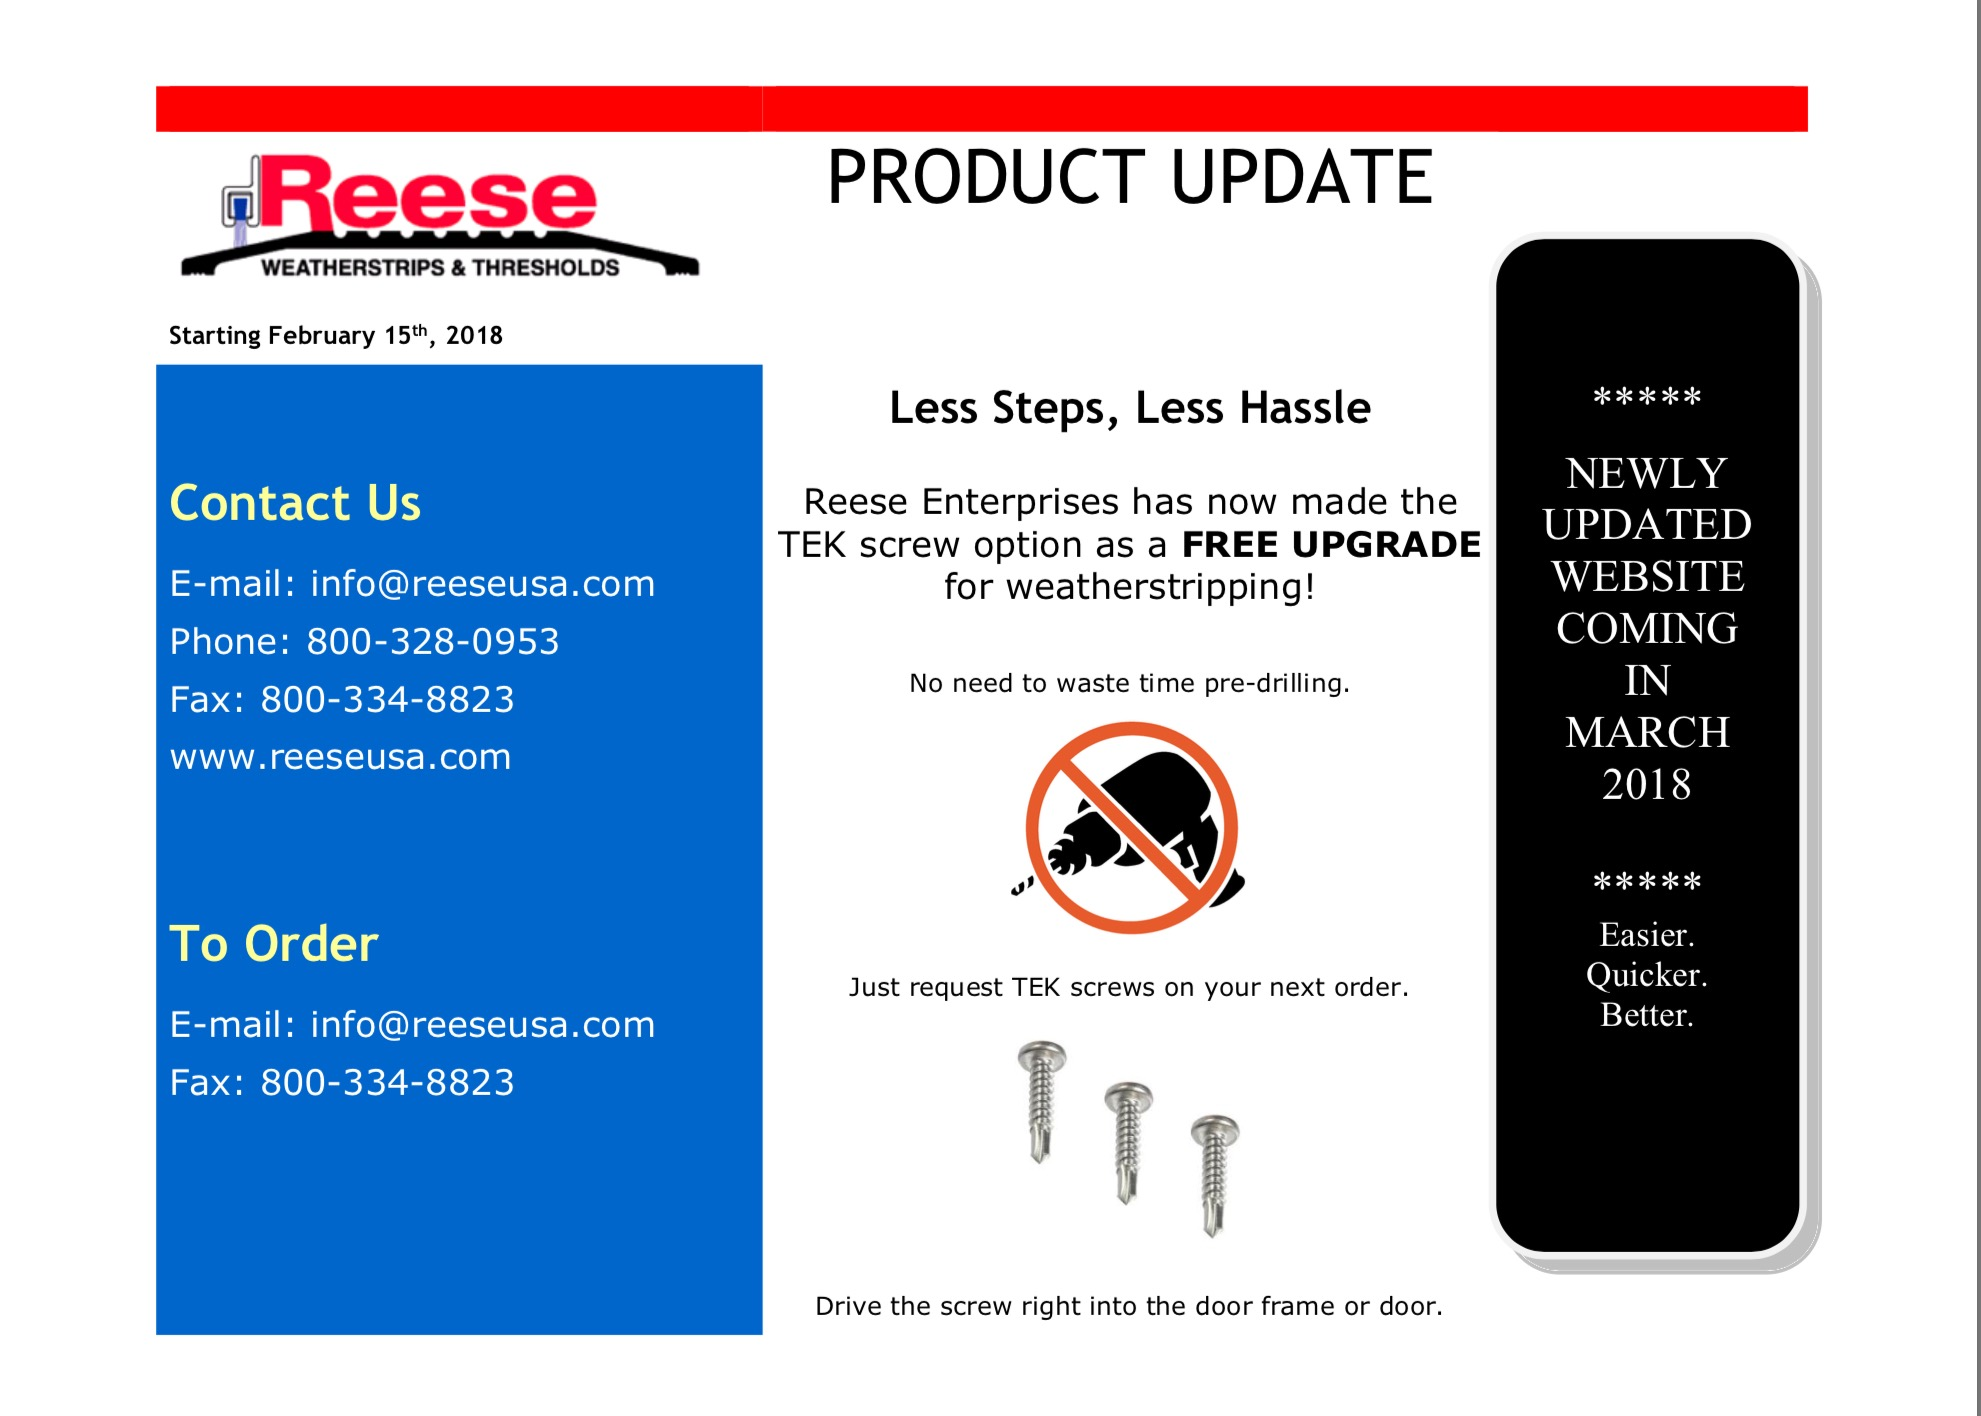 Reese Product Announcement